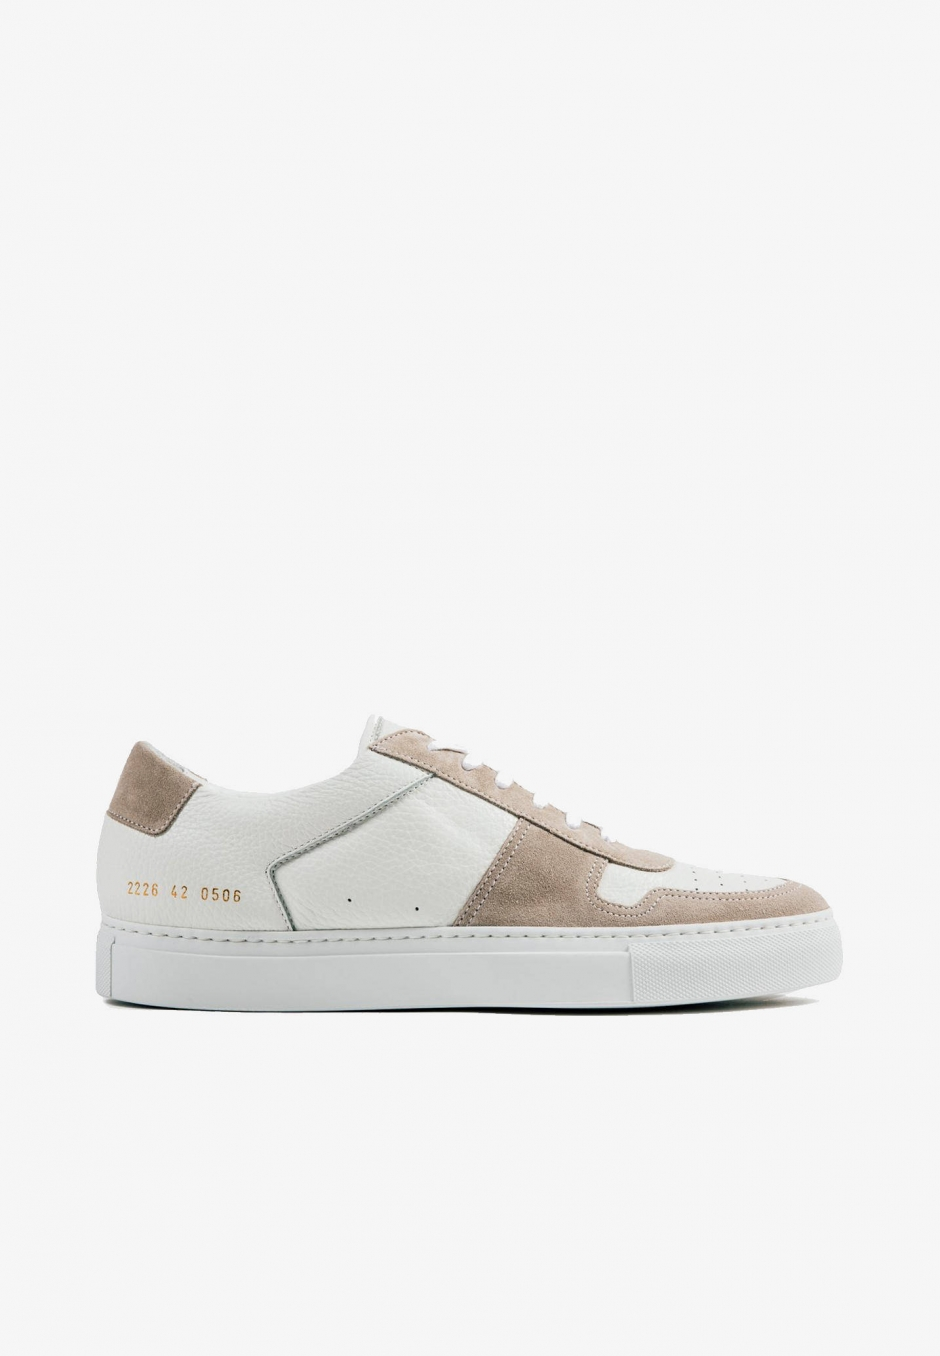 Common Projects Bball low premium